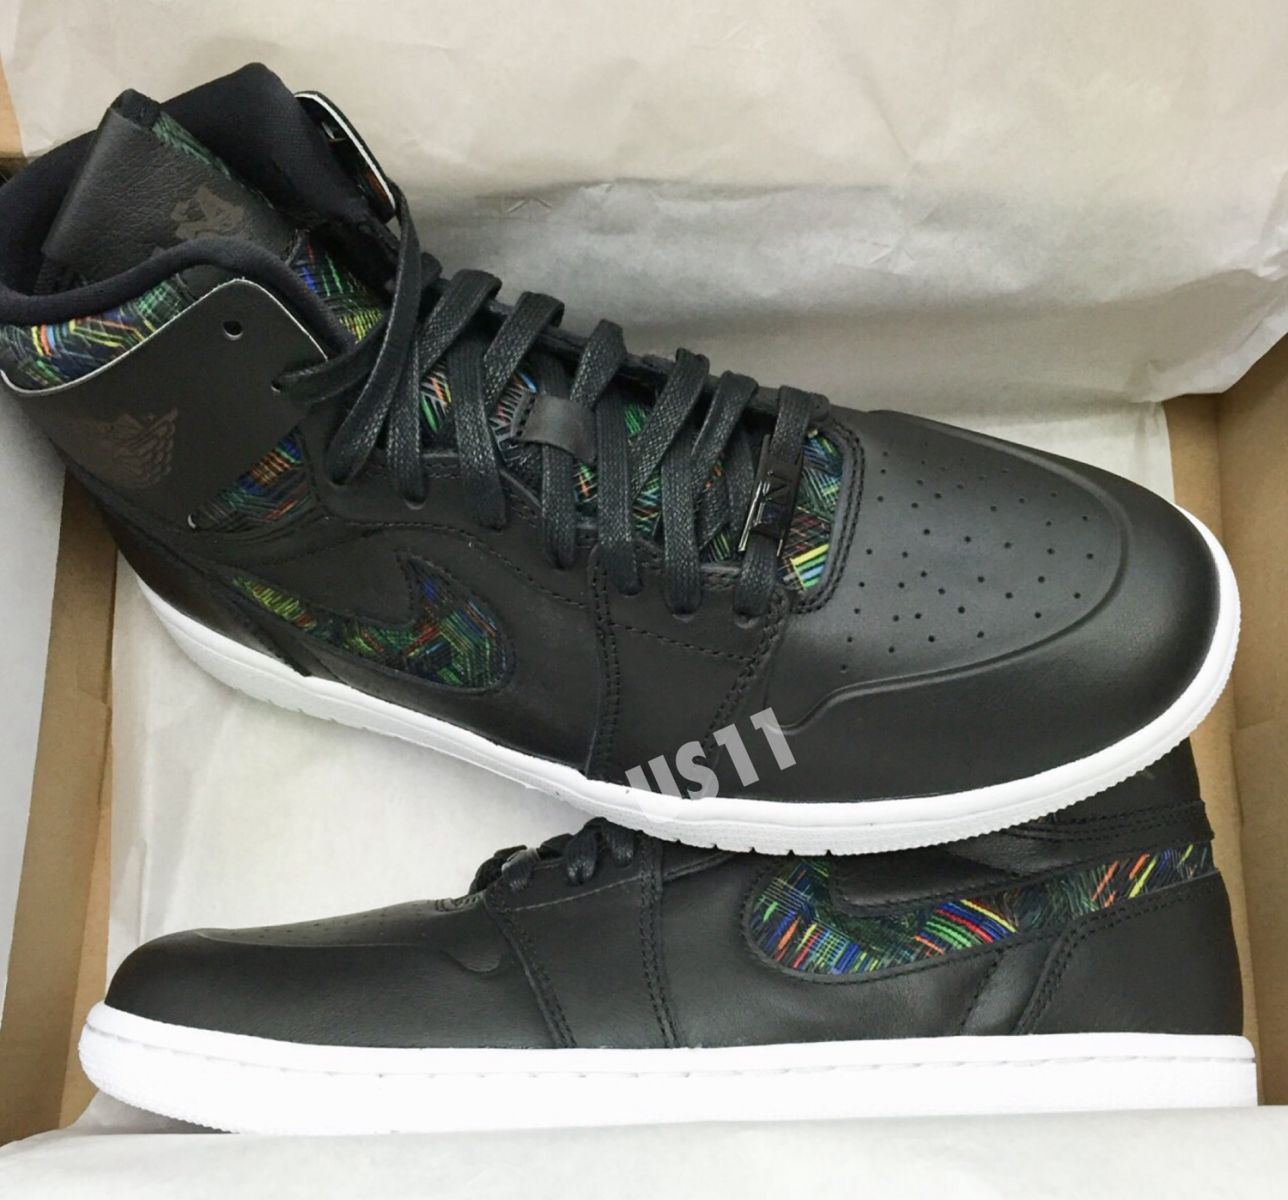 bhm-jordan-1-high-black